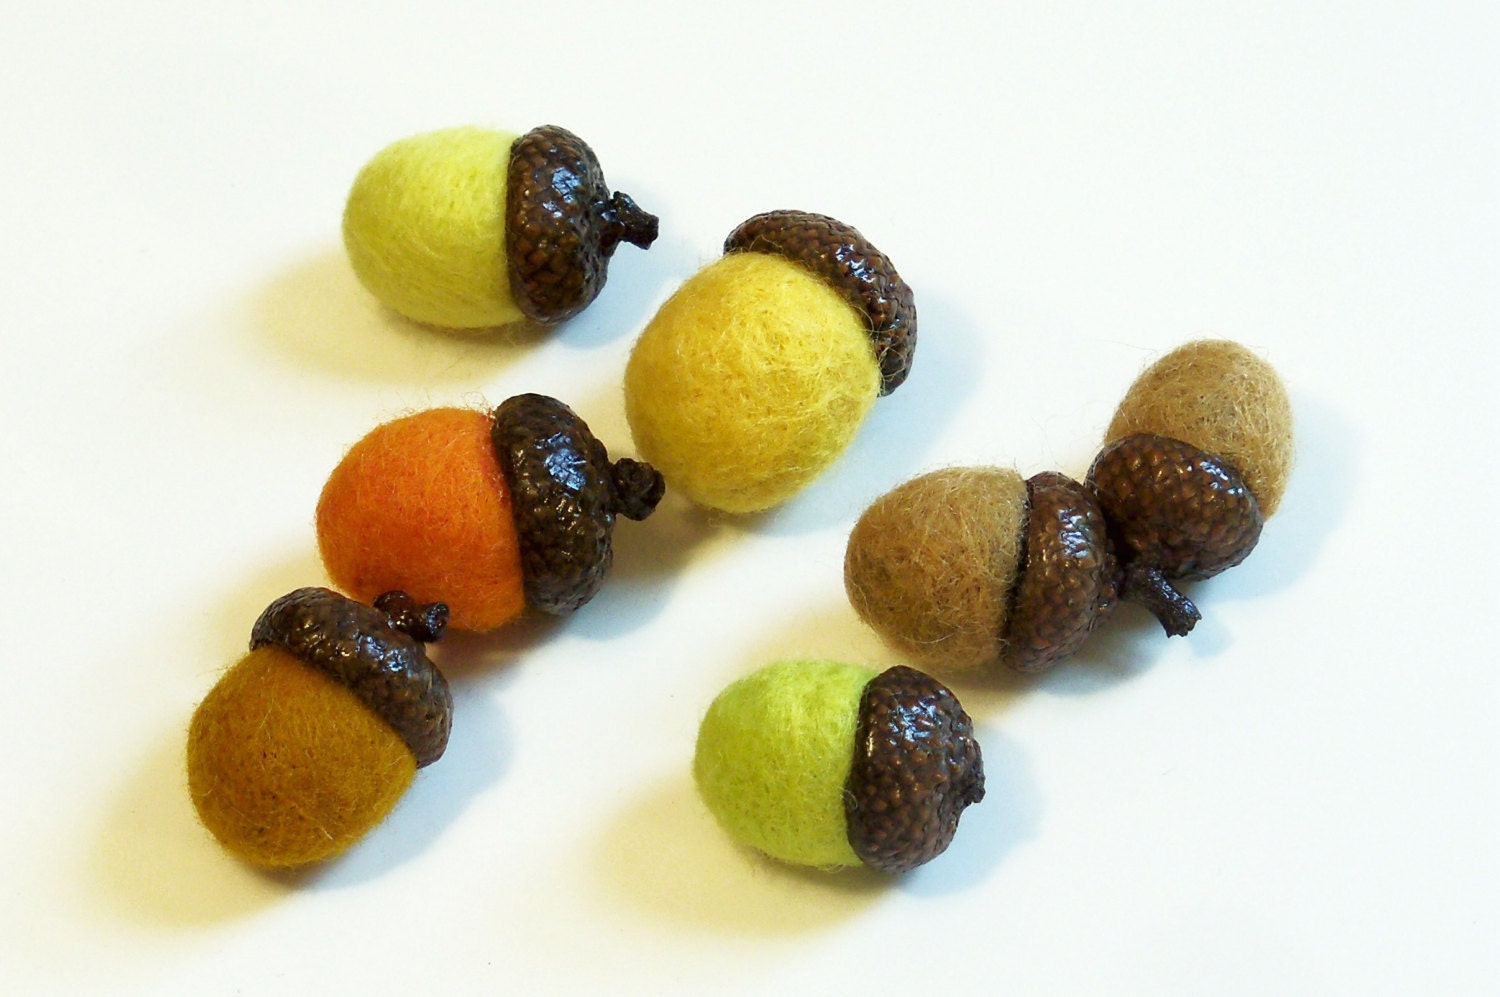 Needle Felted Acorns - Seven in Assorted Fall Colors - syodercrafts